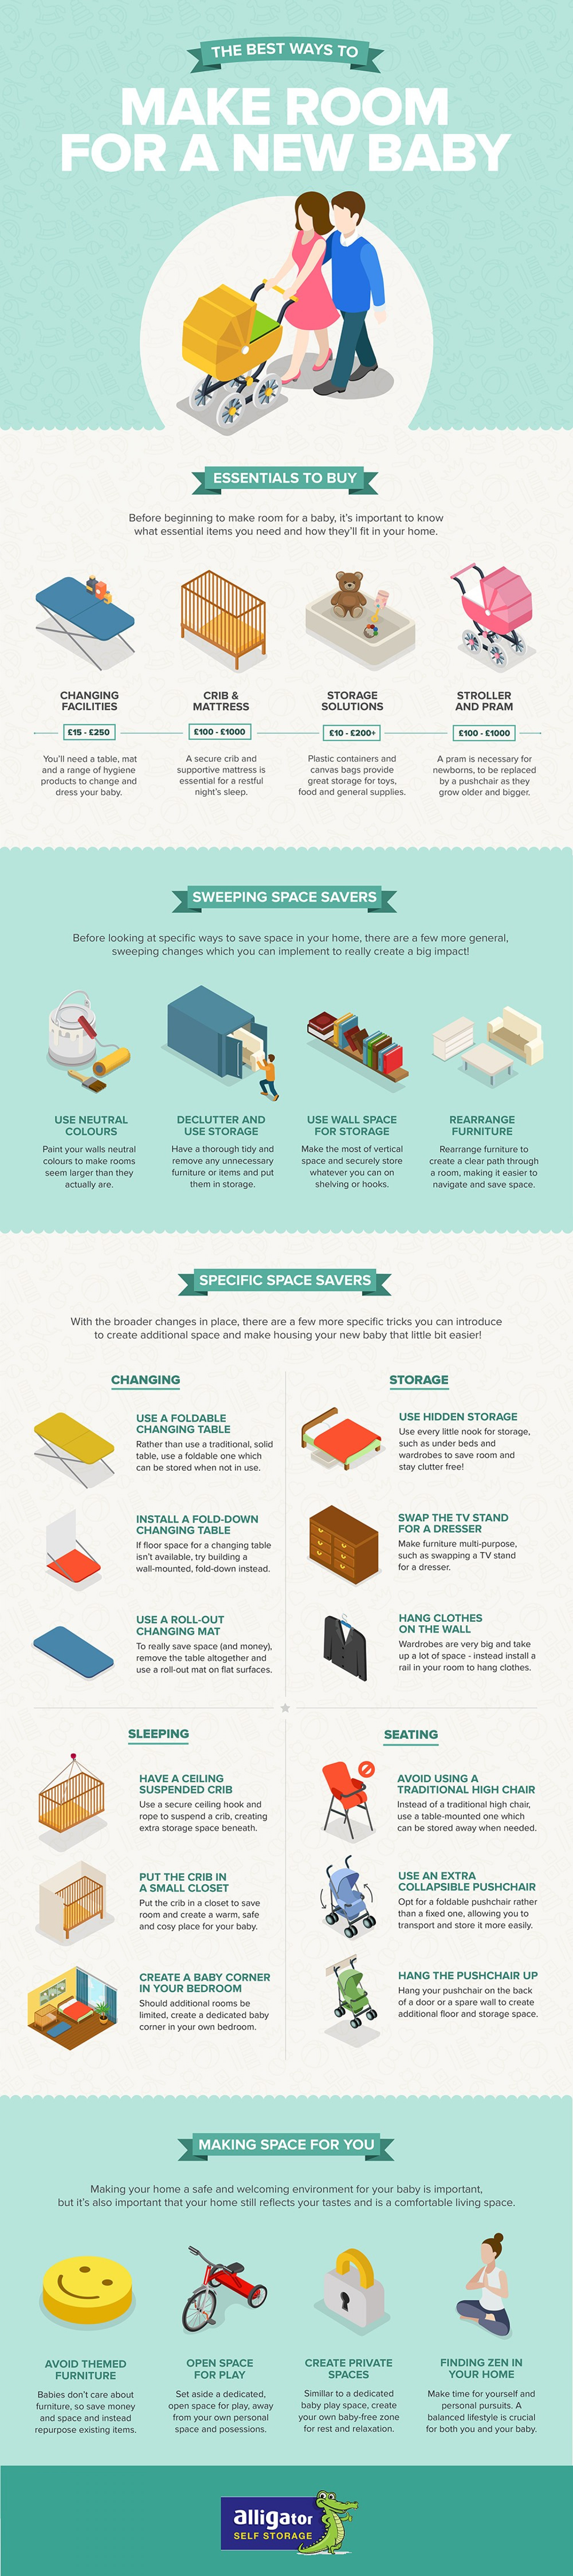 The Best Ways to Make Room for a New Baby Infographic